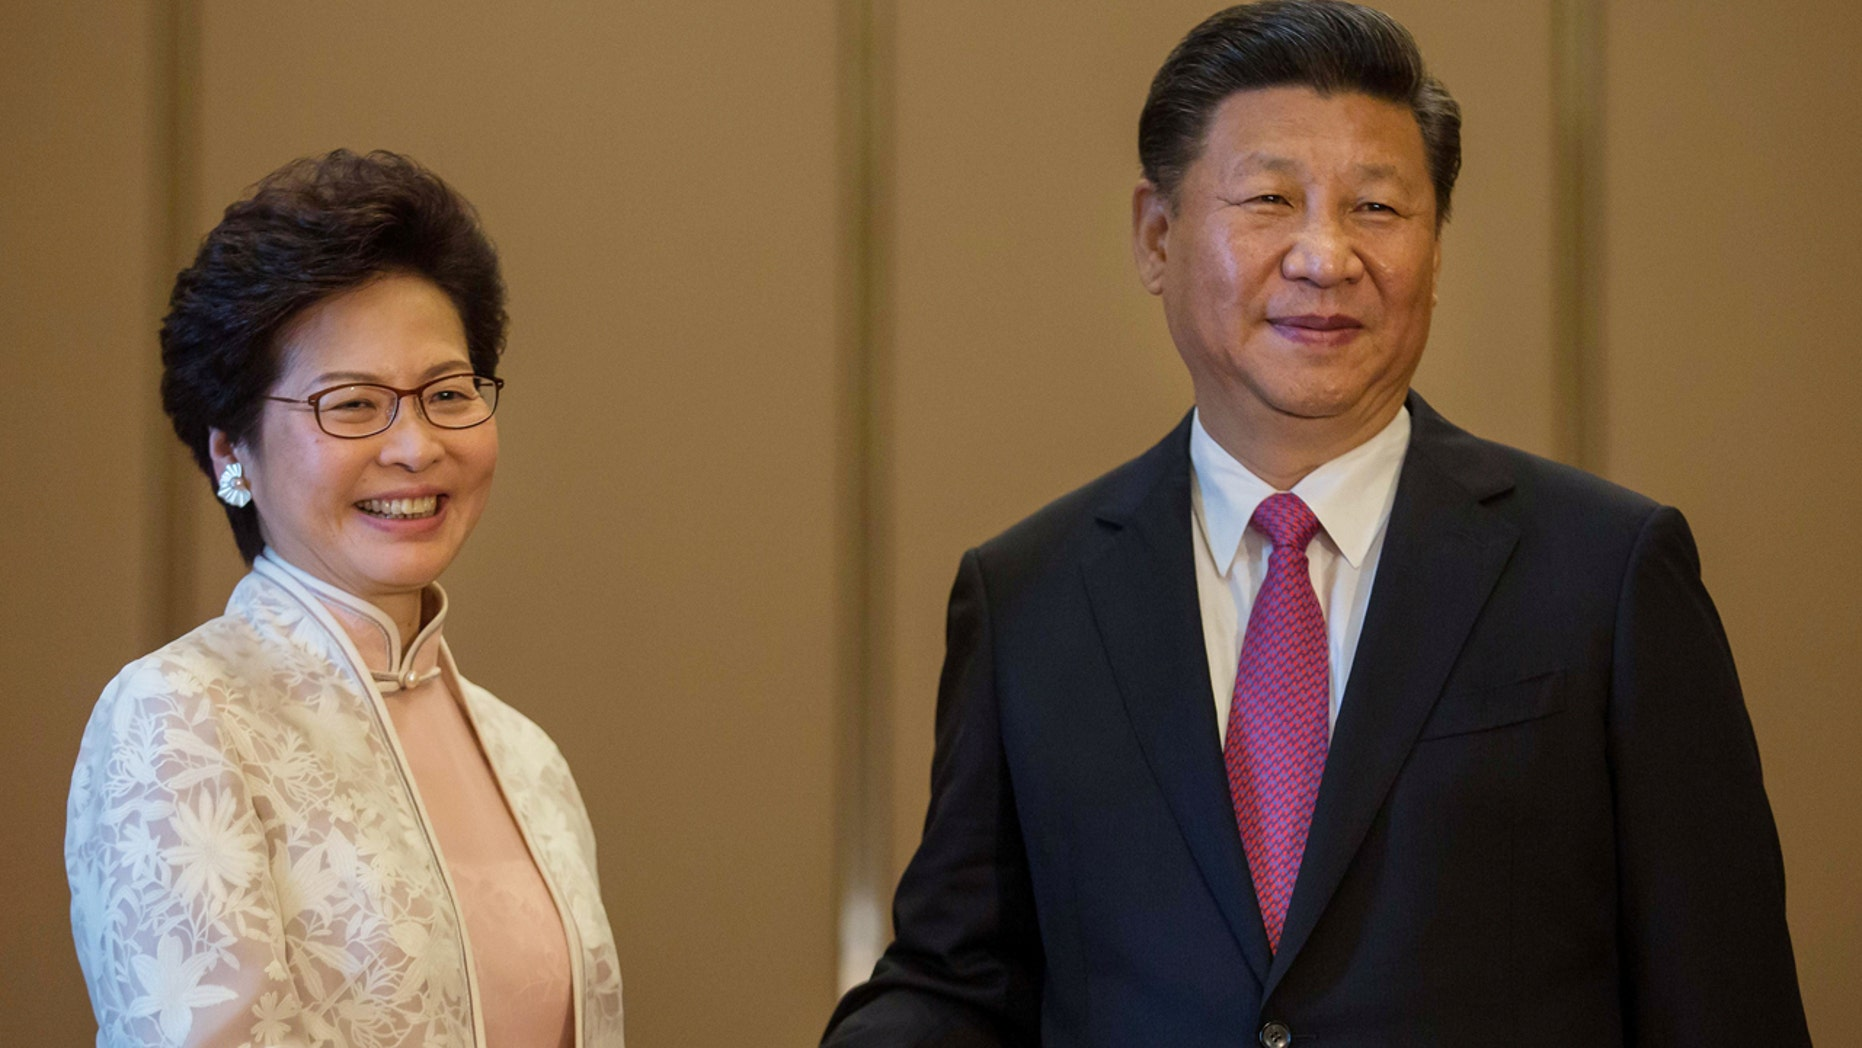 JULY 1: China's President Xi Jinping shakes hands with Hong Kong's Incoming Chief Executive Carrie Lam ahead of a meeting in Hong Kong.